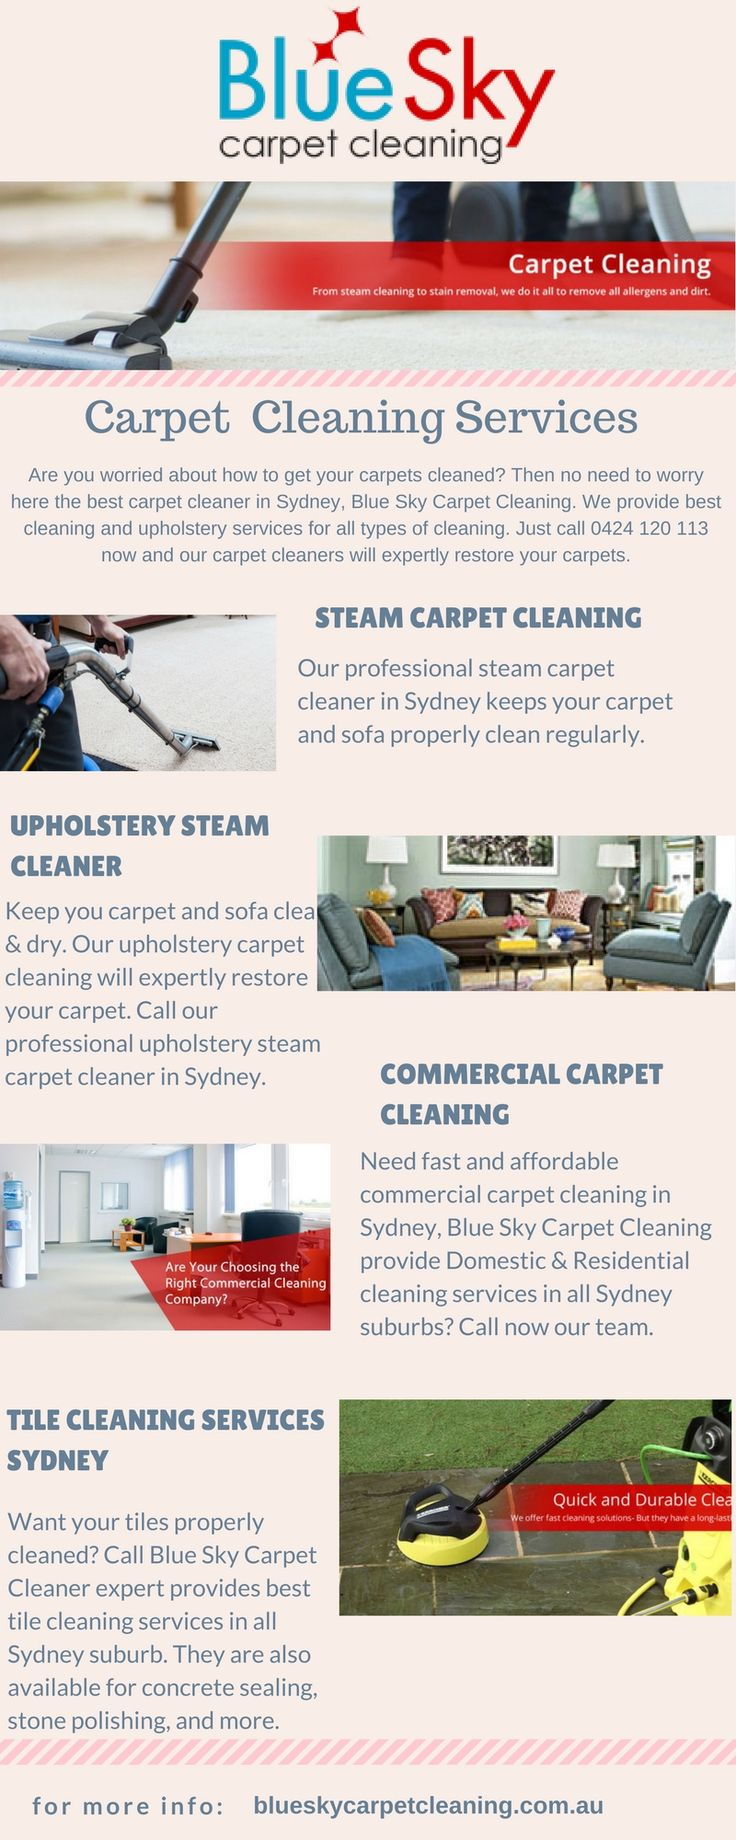 Special offer from Blue Sky #CarpetCleaning. Clean your 3 rooms at just $99 including prespray shampoo, stain treatment, heavy duty steam clean, sanitize, deodorise, and scotch guard.